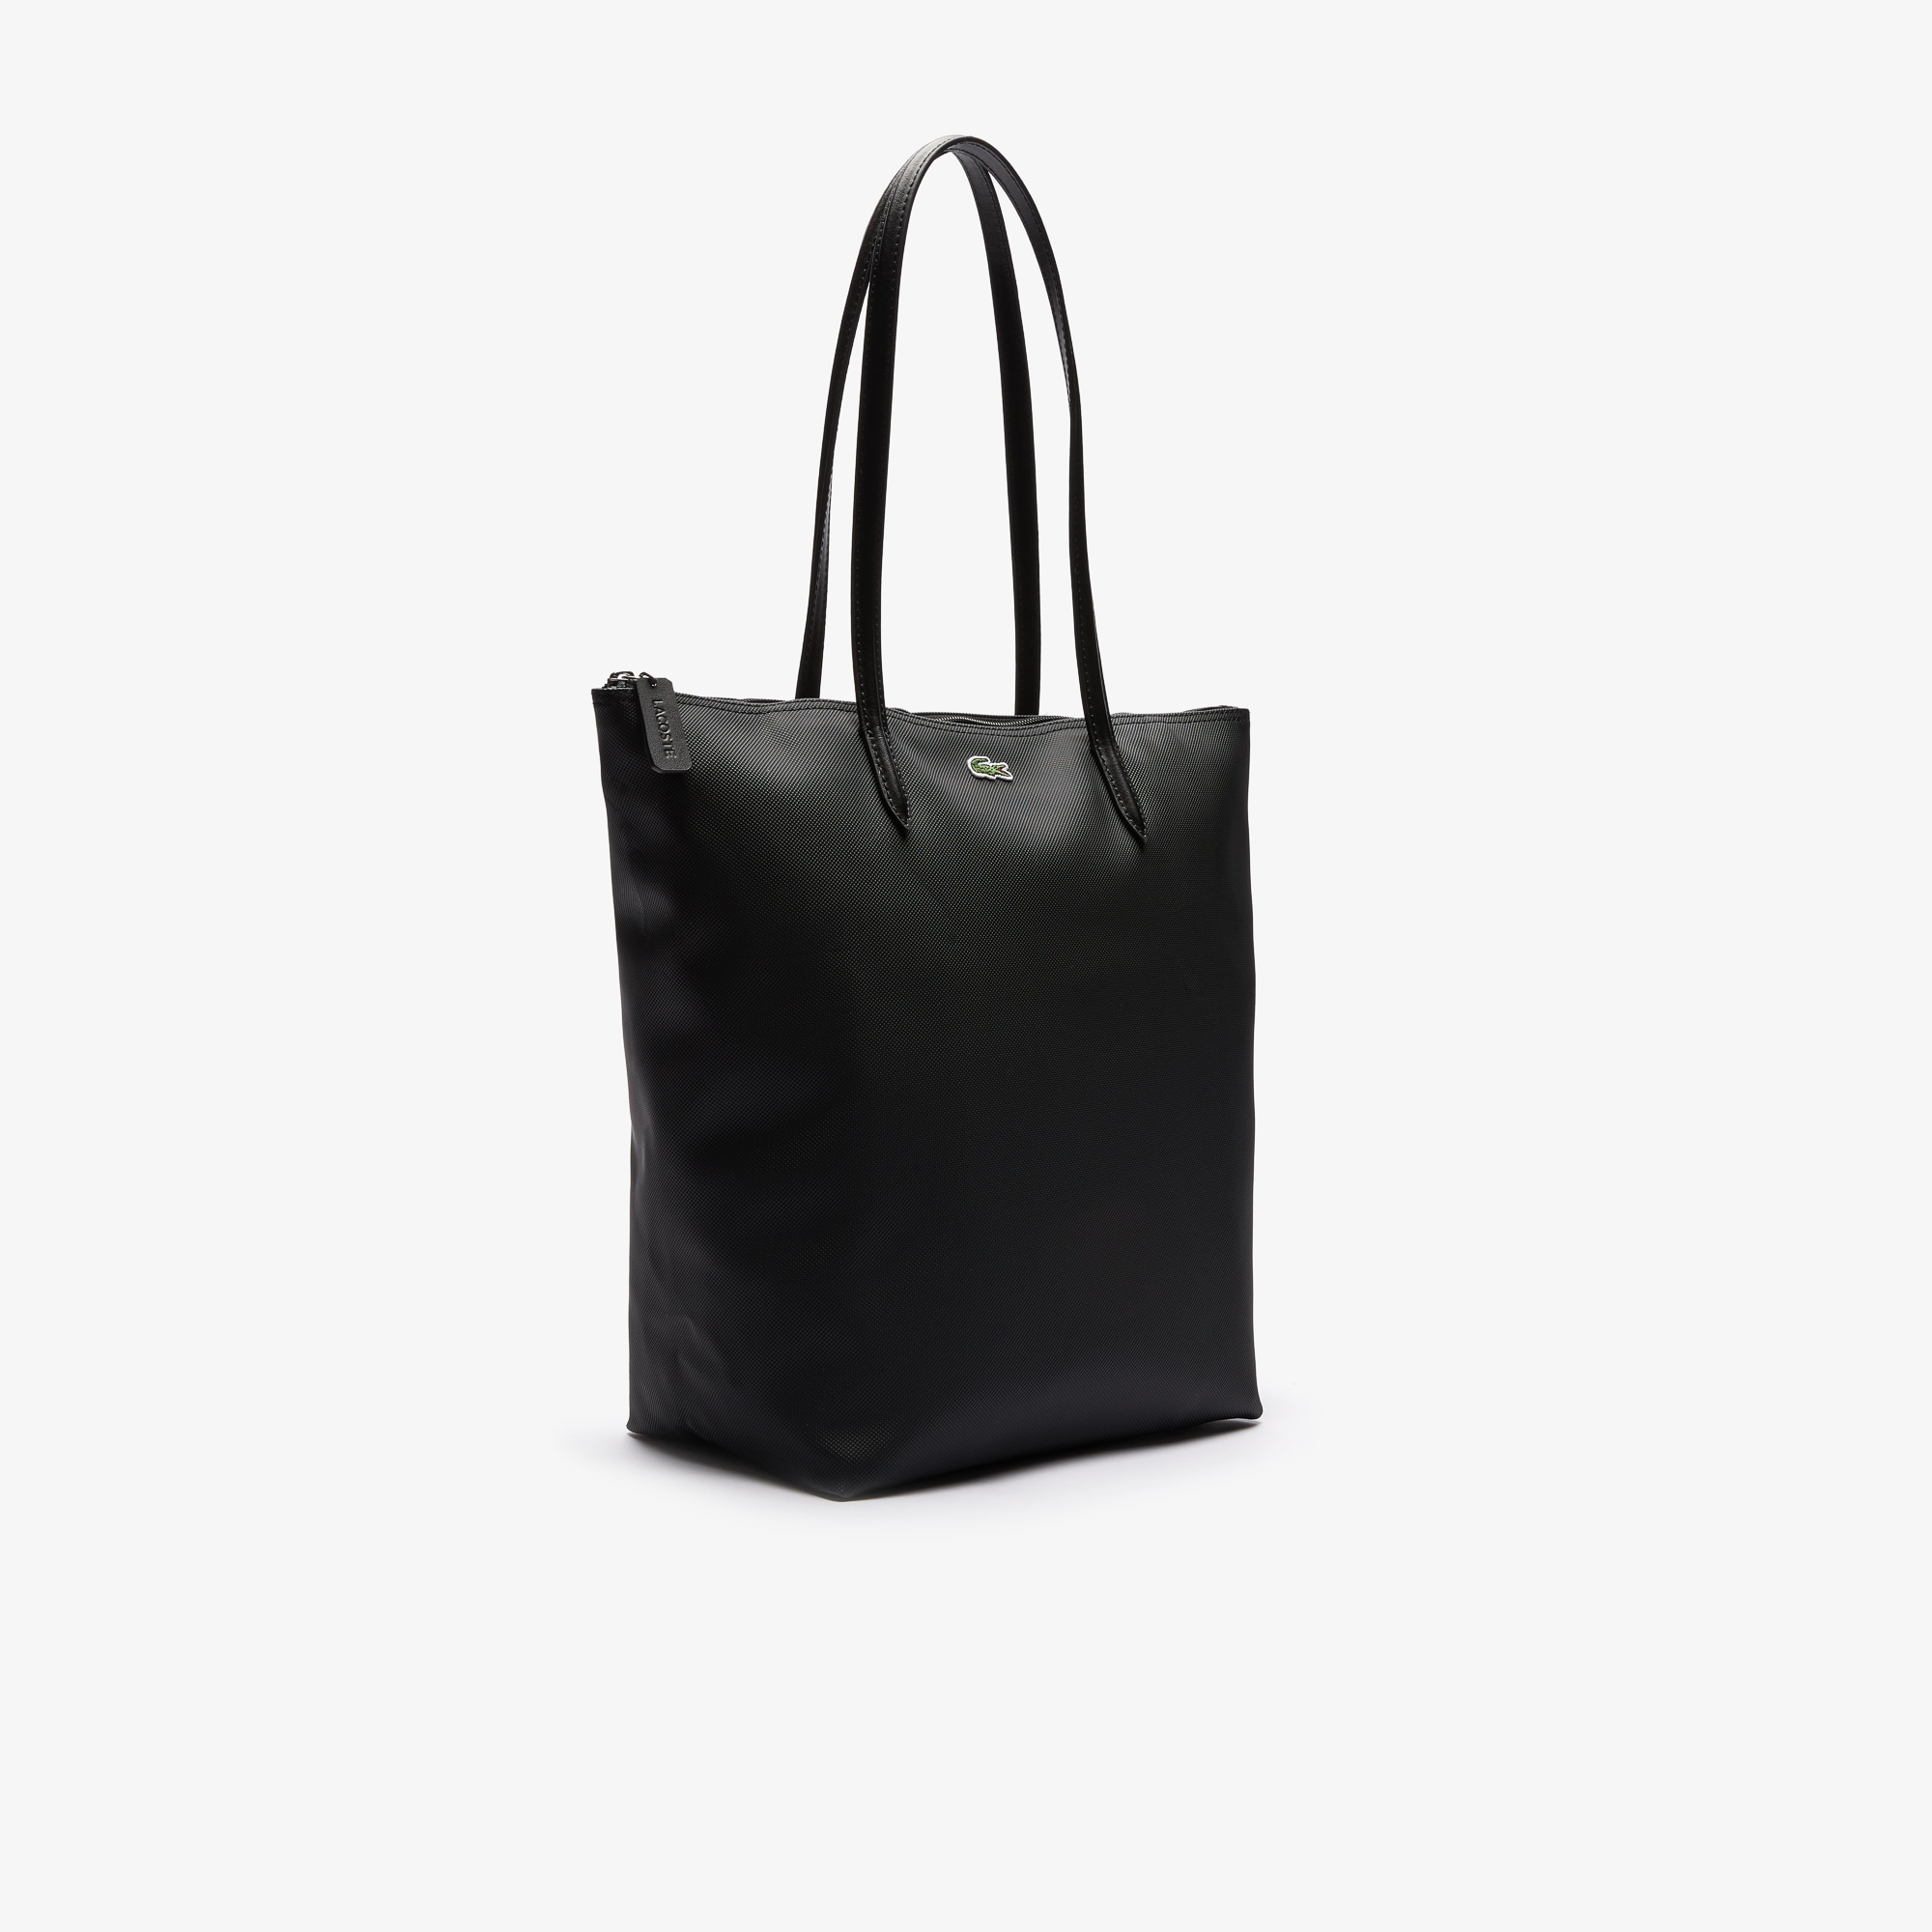 Women's L.12.12 Vertical Tote Bag